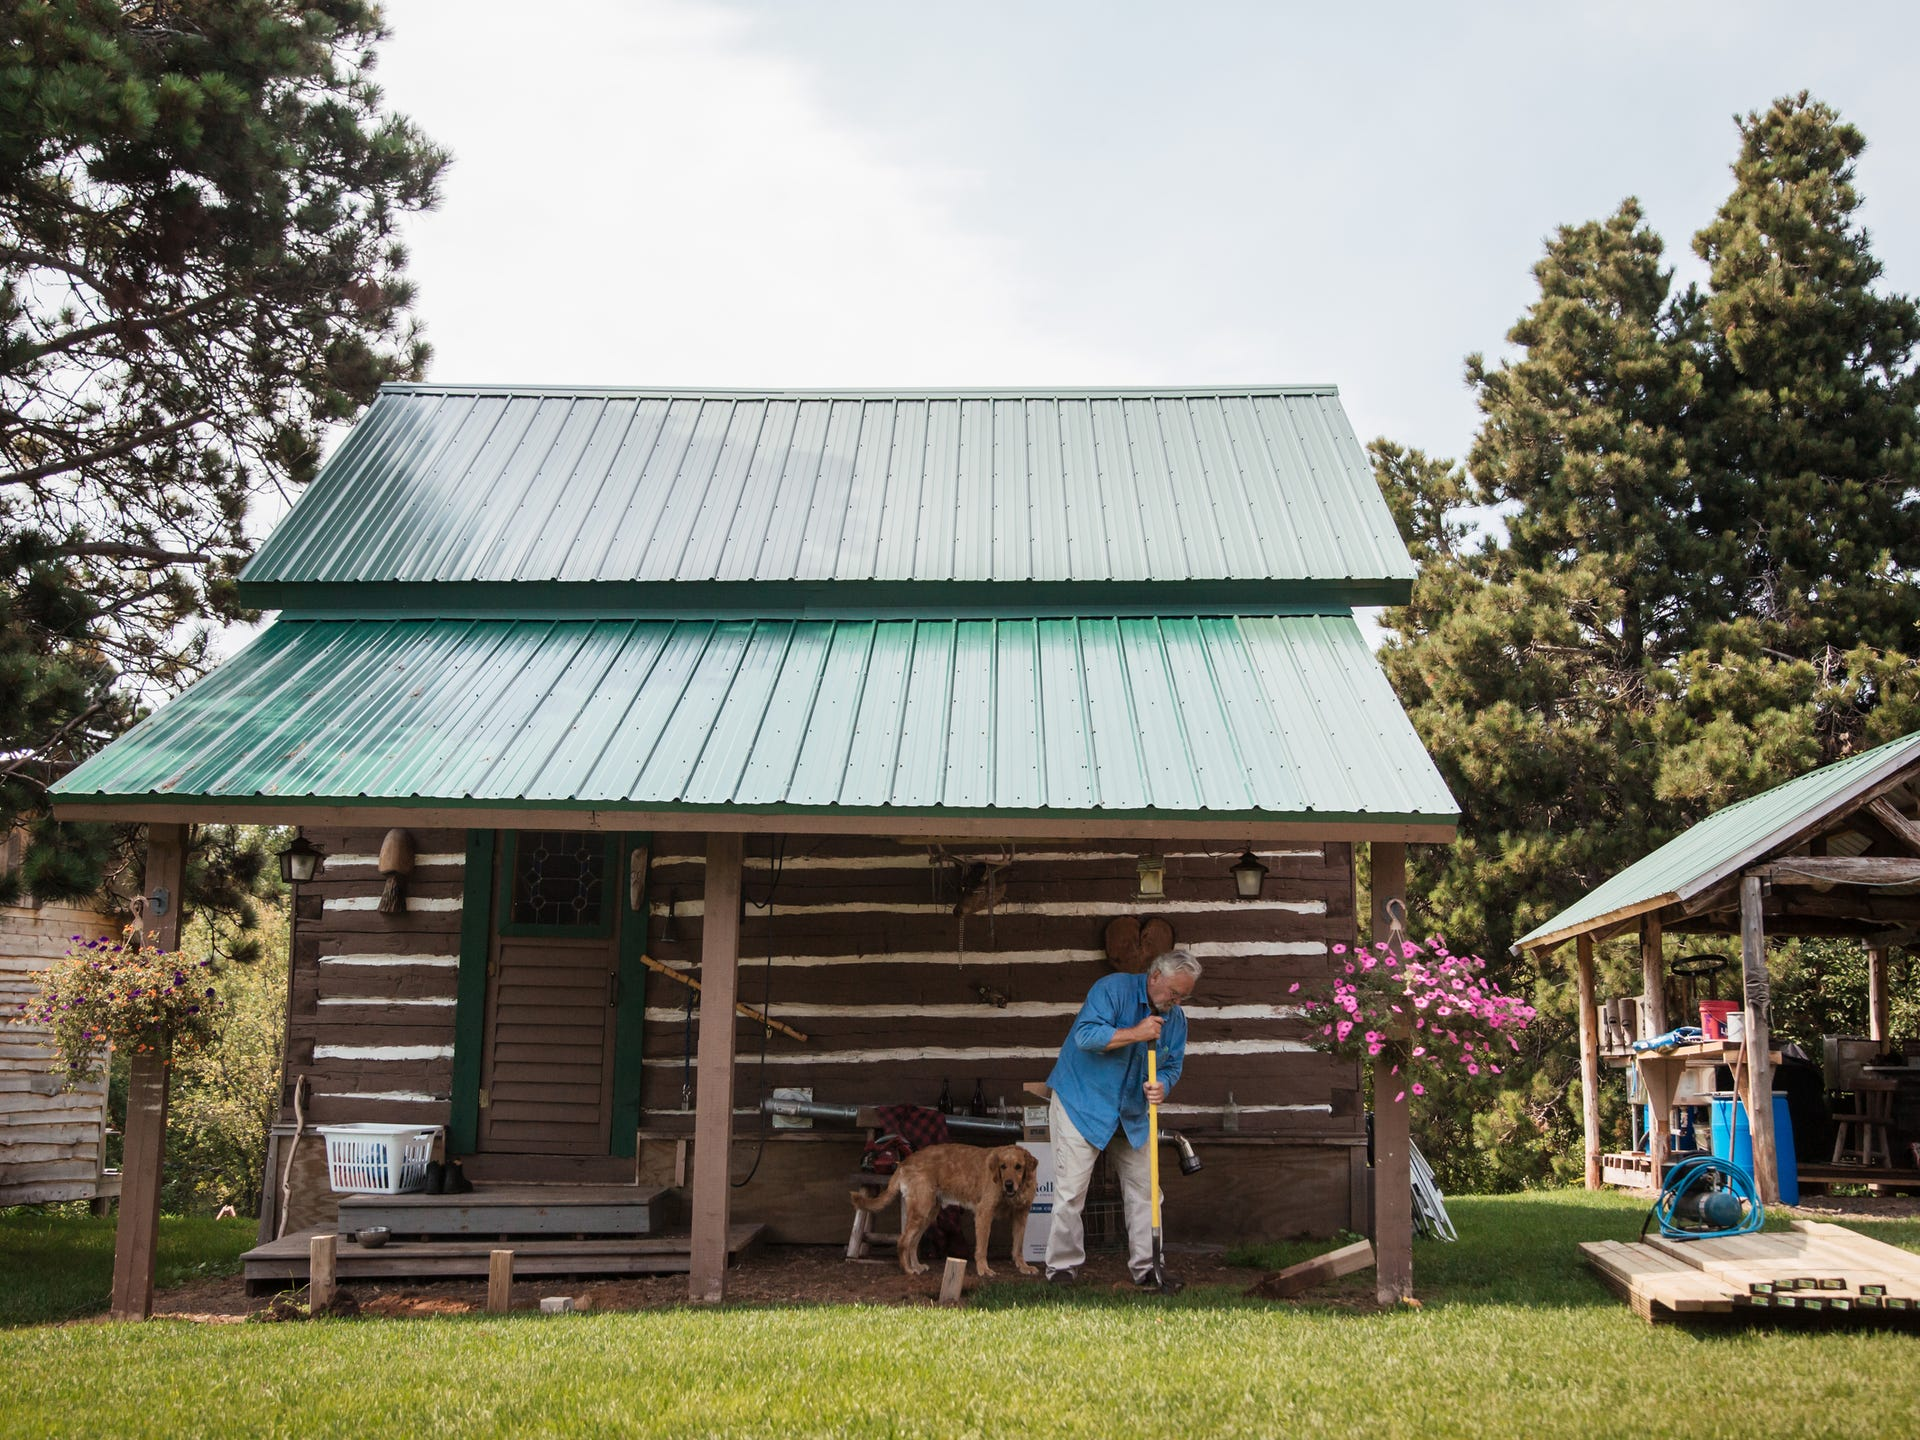 Jim Vivian, 74, does yard work at his cabin in the